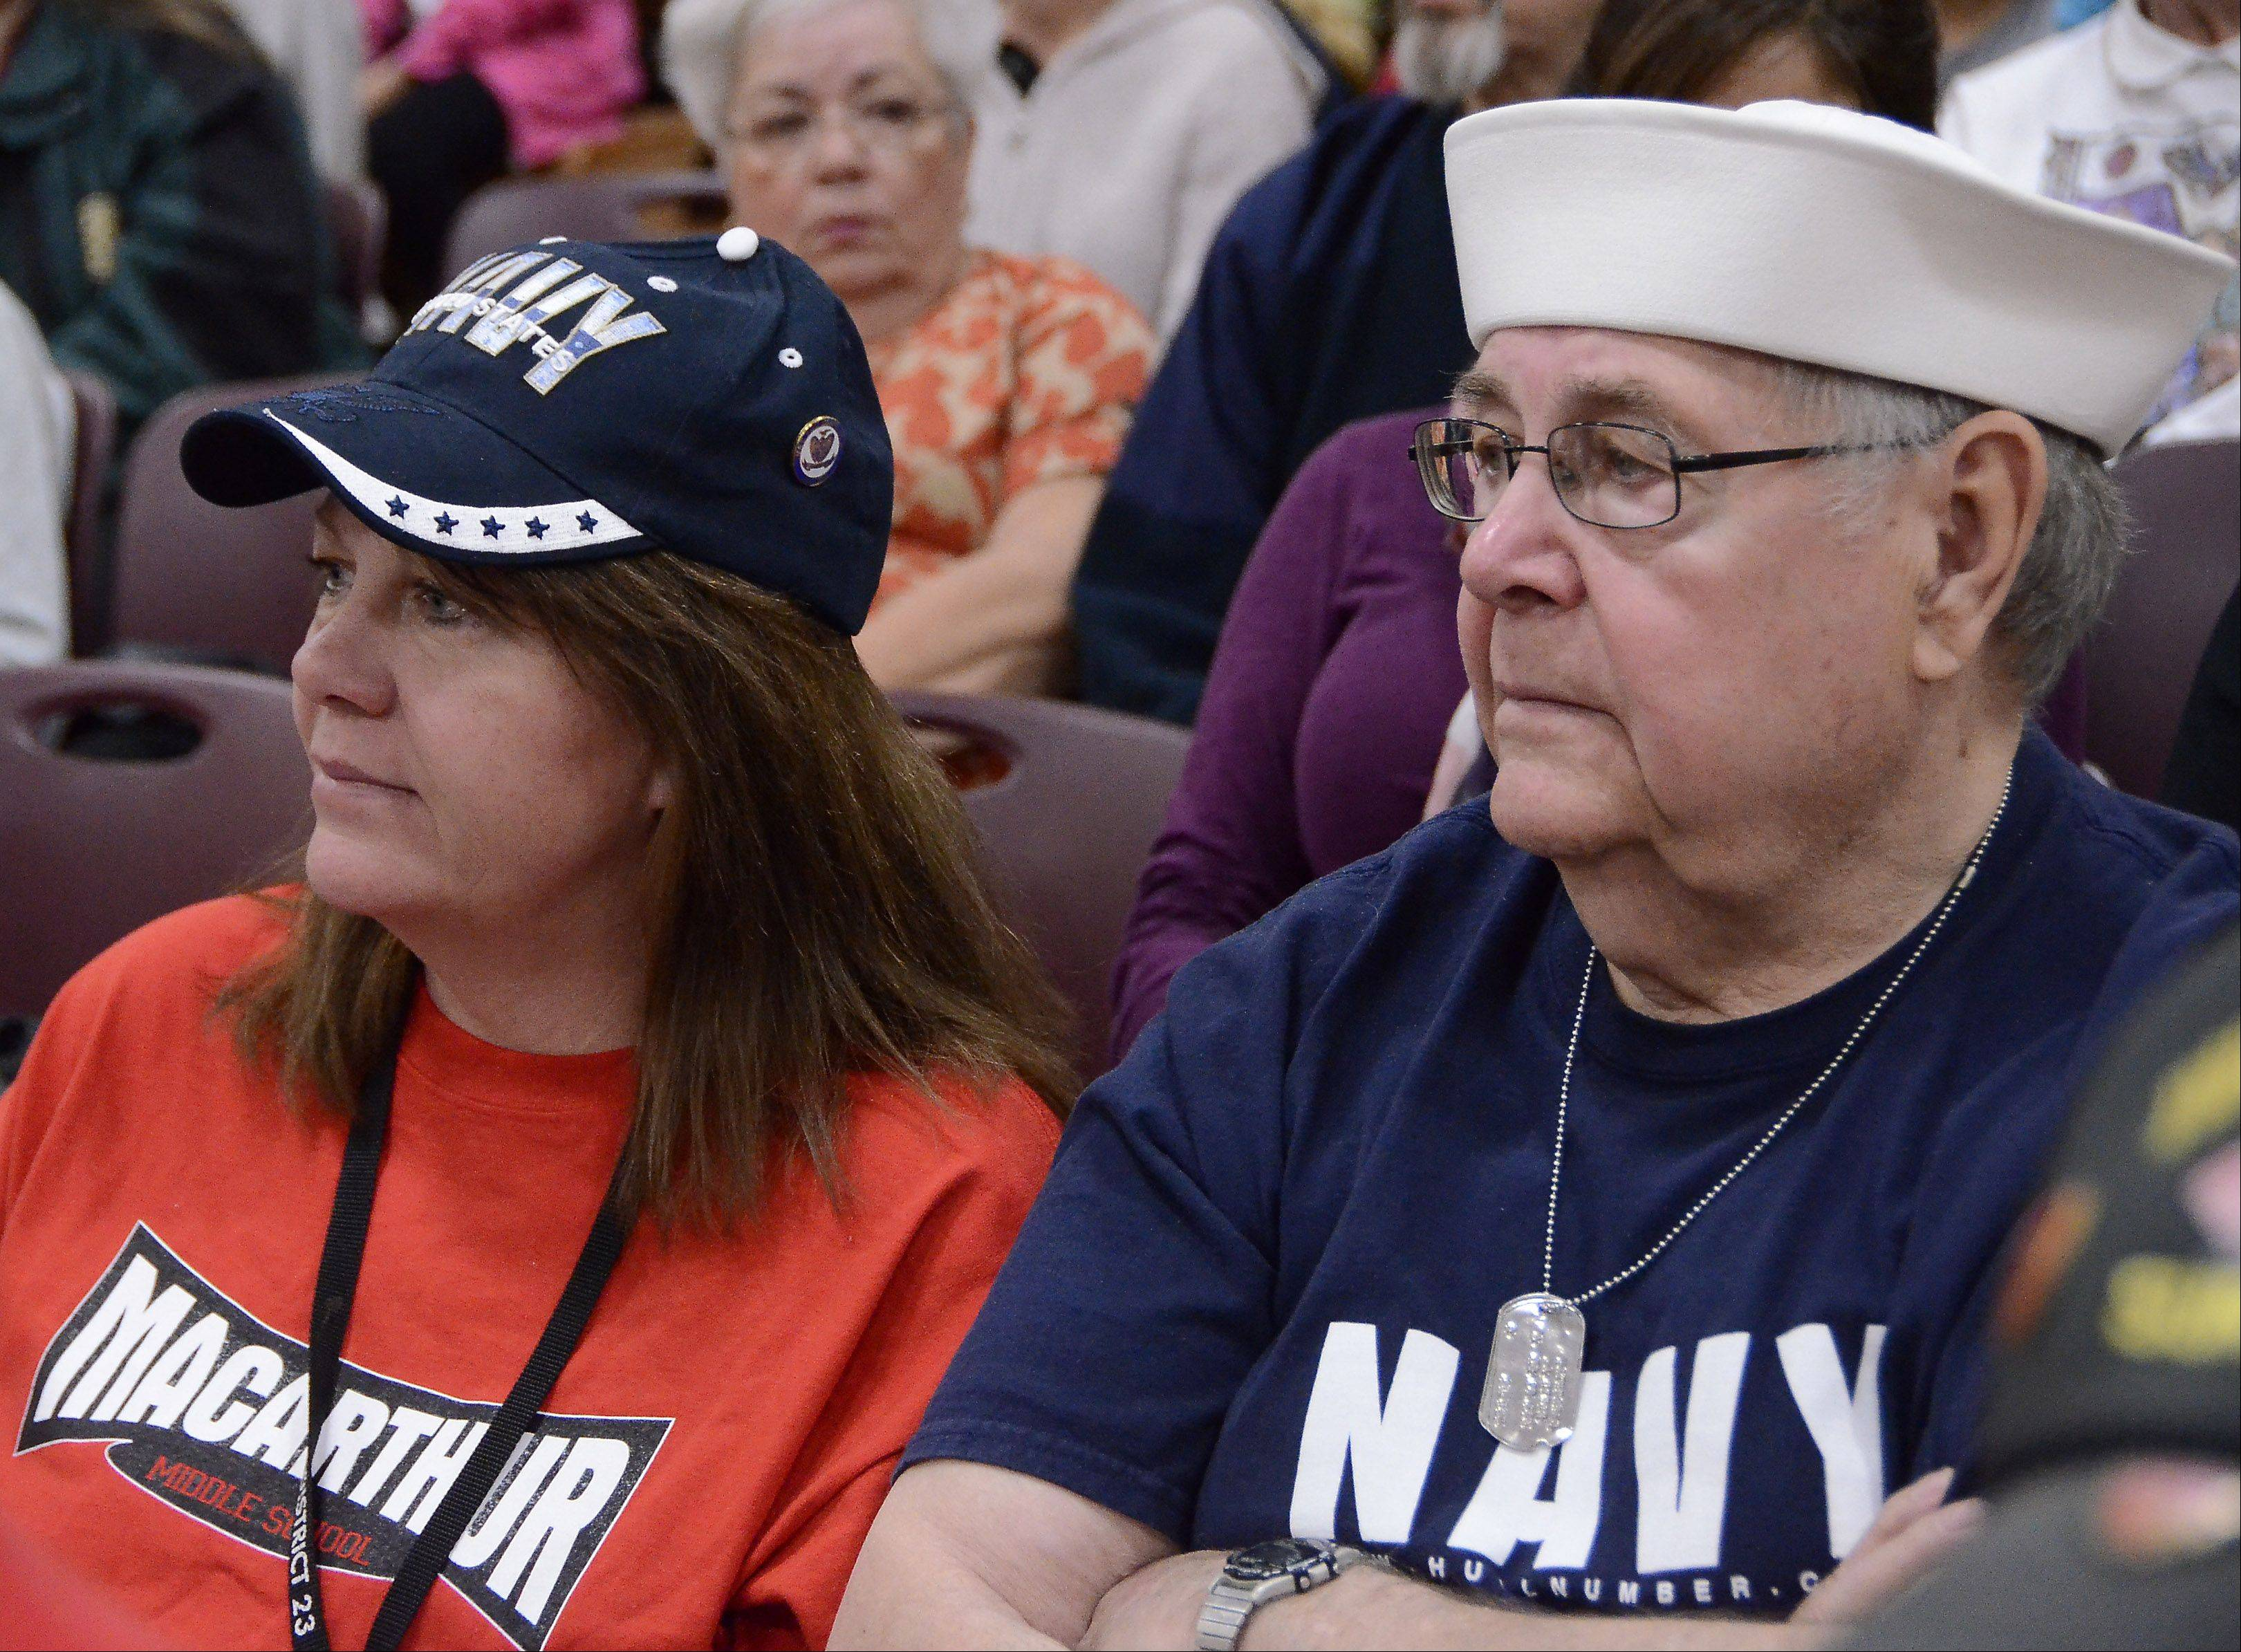 Seventh grade teacher Kim Brunner invited her father Edwin Obrachta of Huntley at the Veterans Day breakfast and assembly Friday at MacArthur Middle School in Prospect Heights. Obrachta served in the Navy during the Korean War.